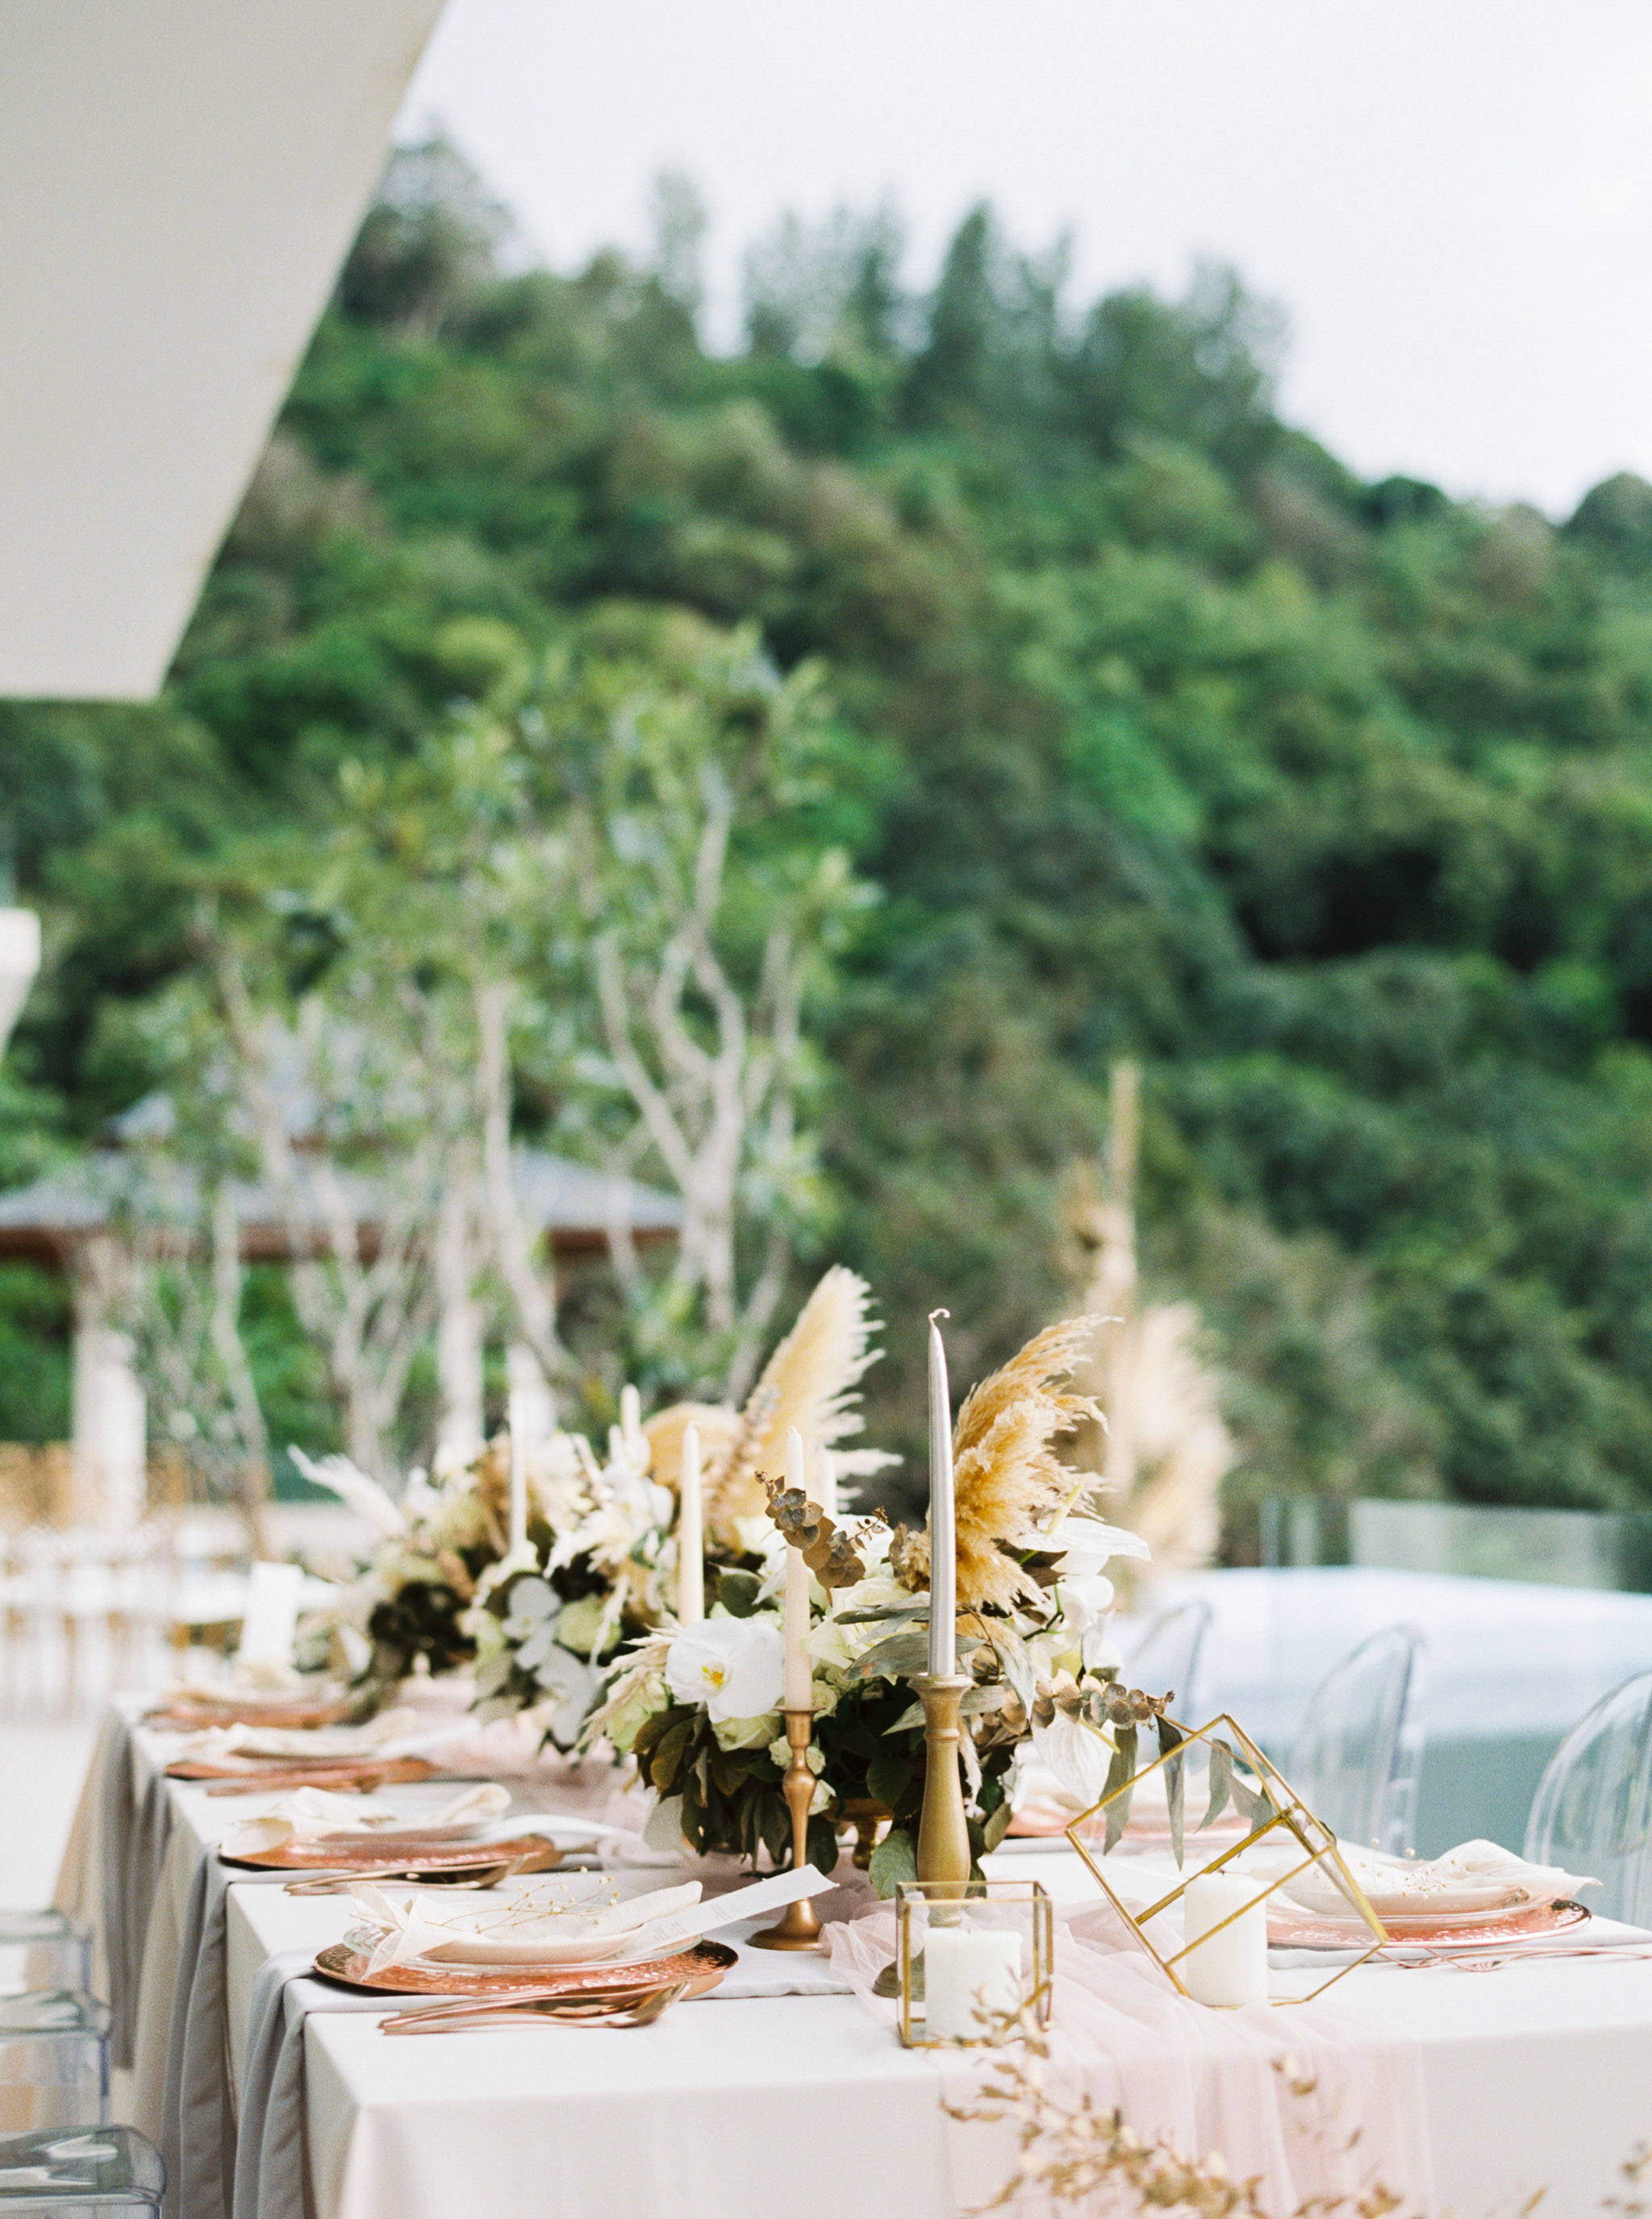 Destination Wedding at The Aquila Luxury Villas in Phuket Thailand Fine Art Film Wedding Photographer Sheri McMahon-00053-53.jpg